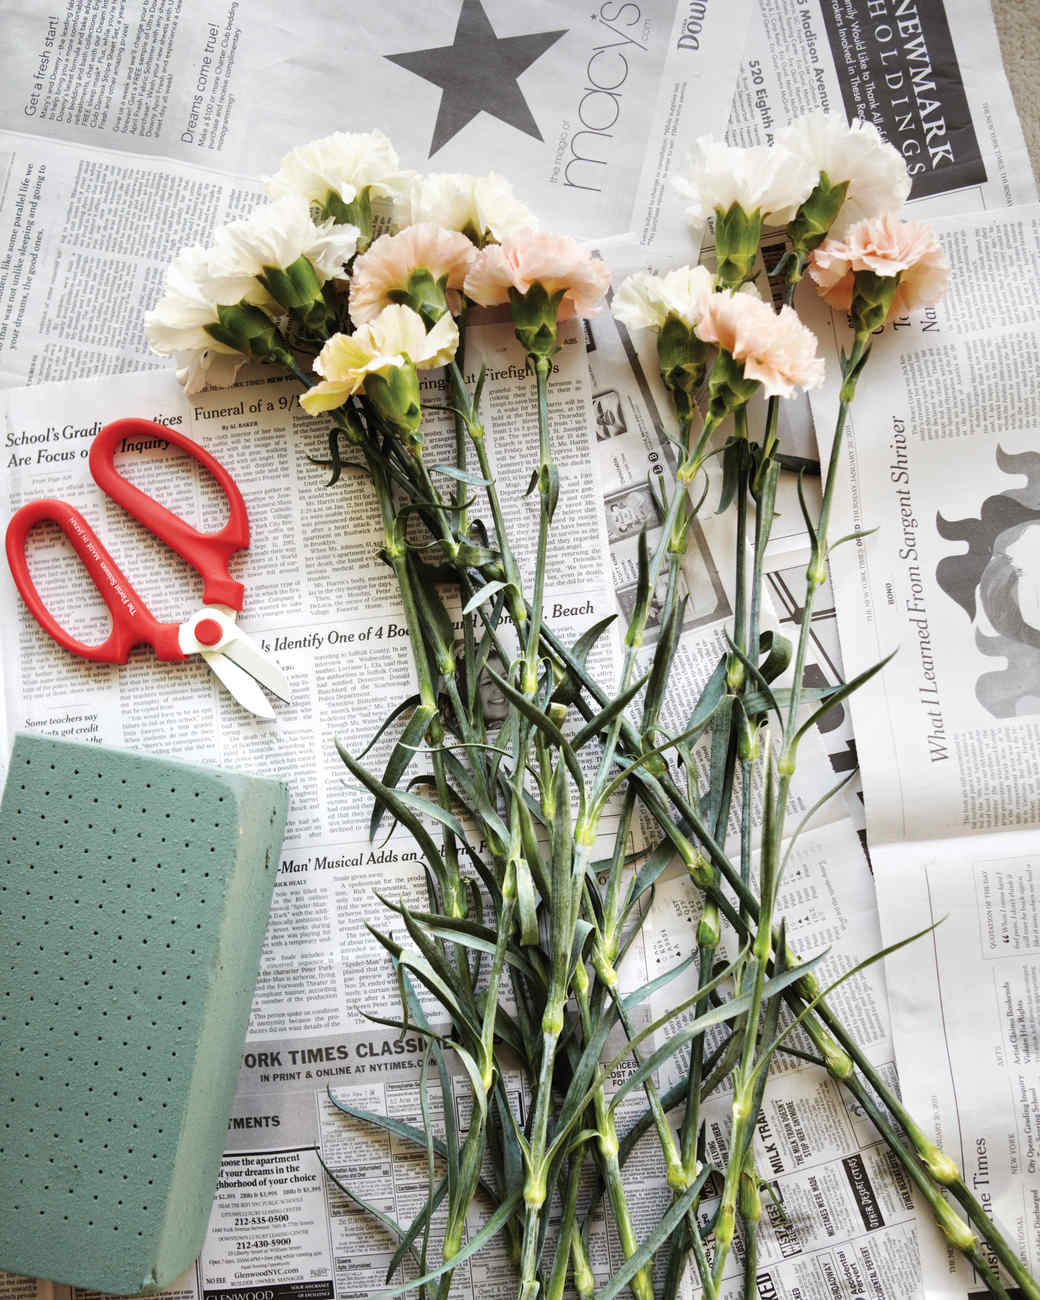 Flower Arrangements Basics: Kevin's Flower-Arranging Tips